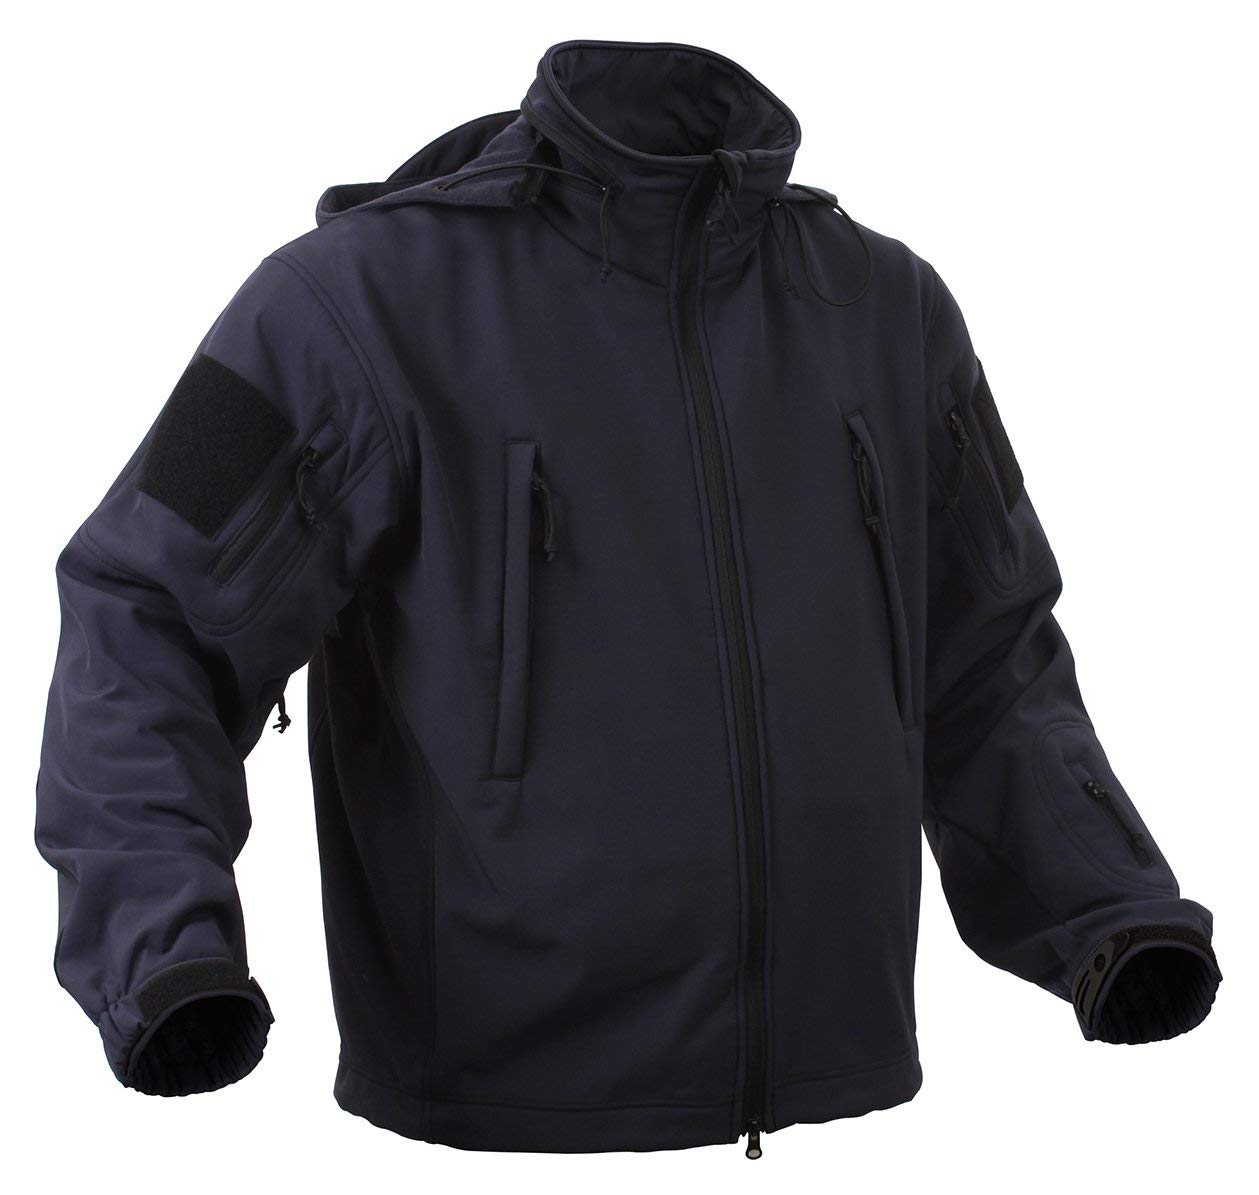 Rothco Special Ops Soft Shell Jacket - Midnite Blue - Medium - 9511-BLUE-M